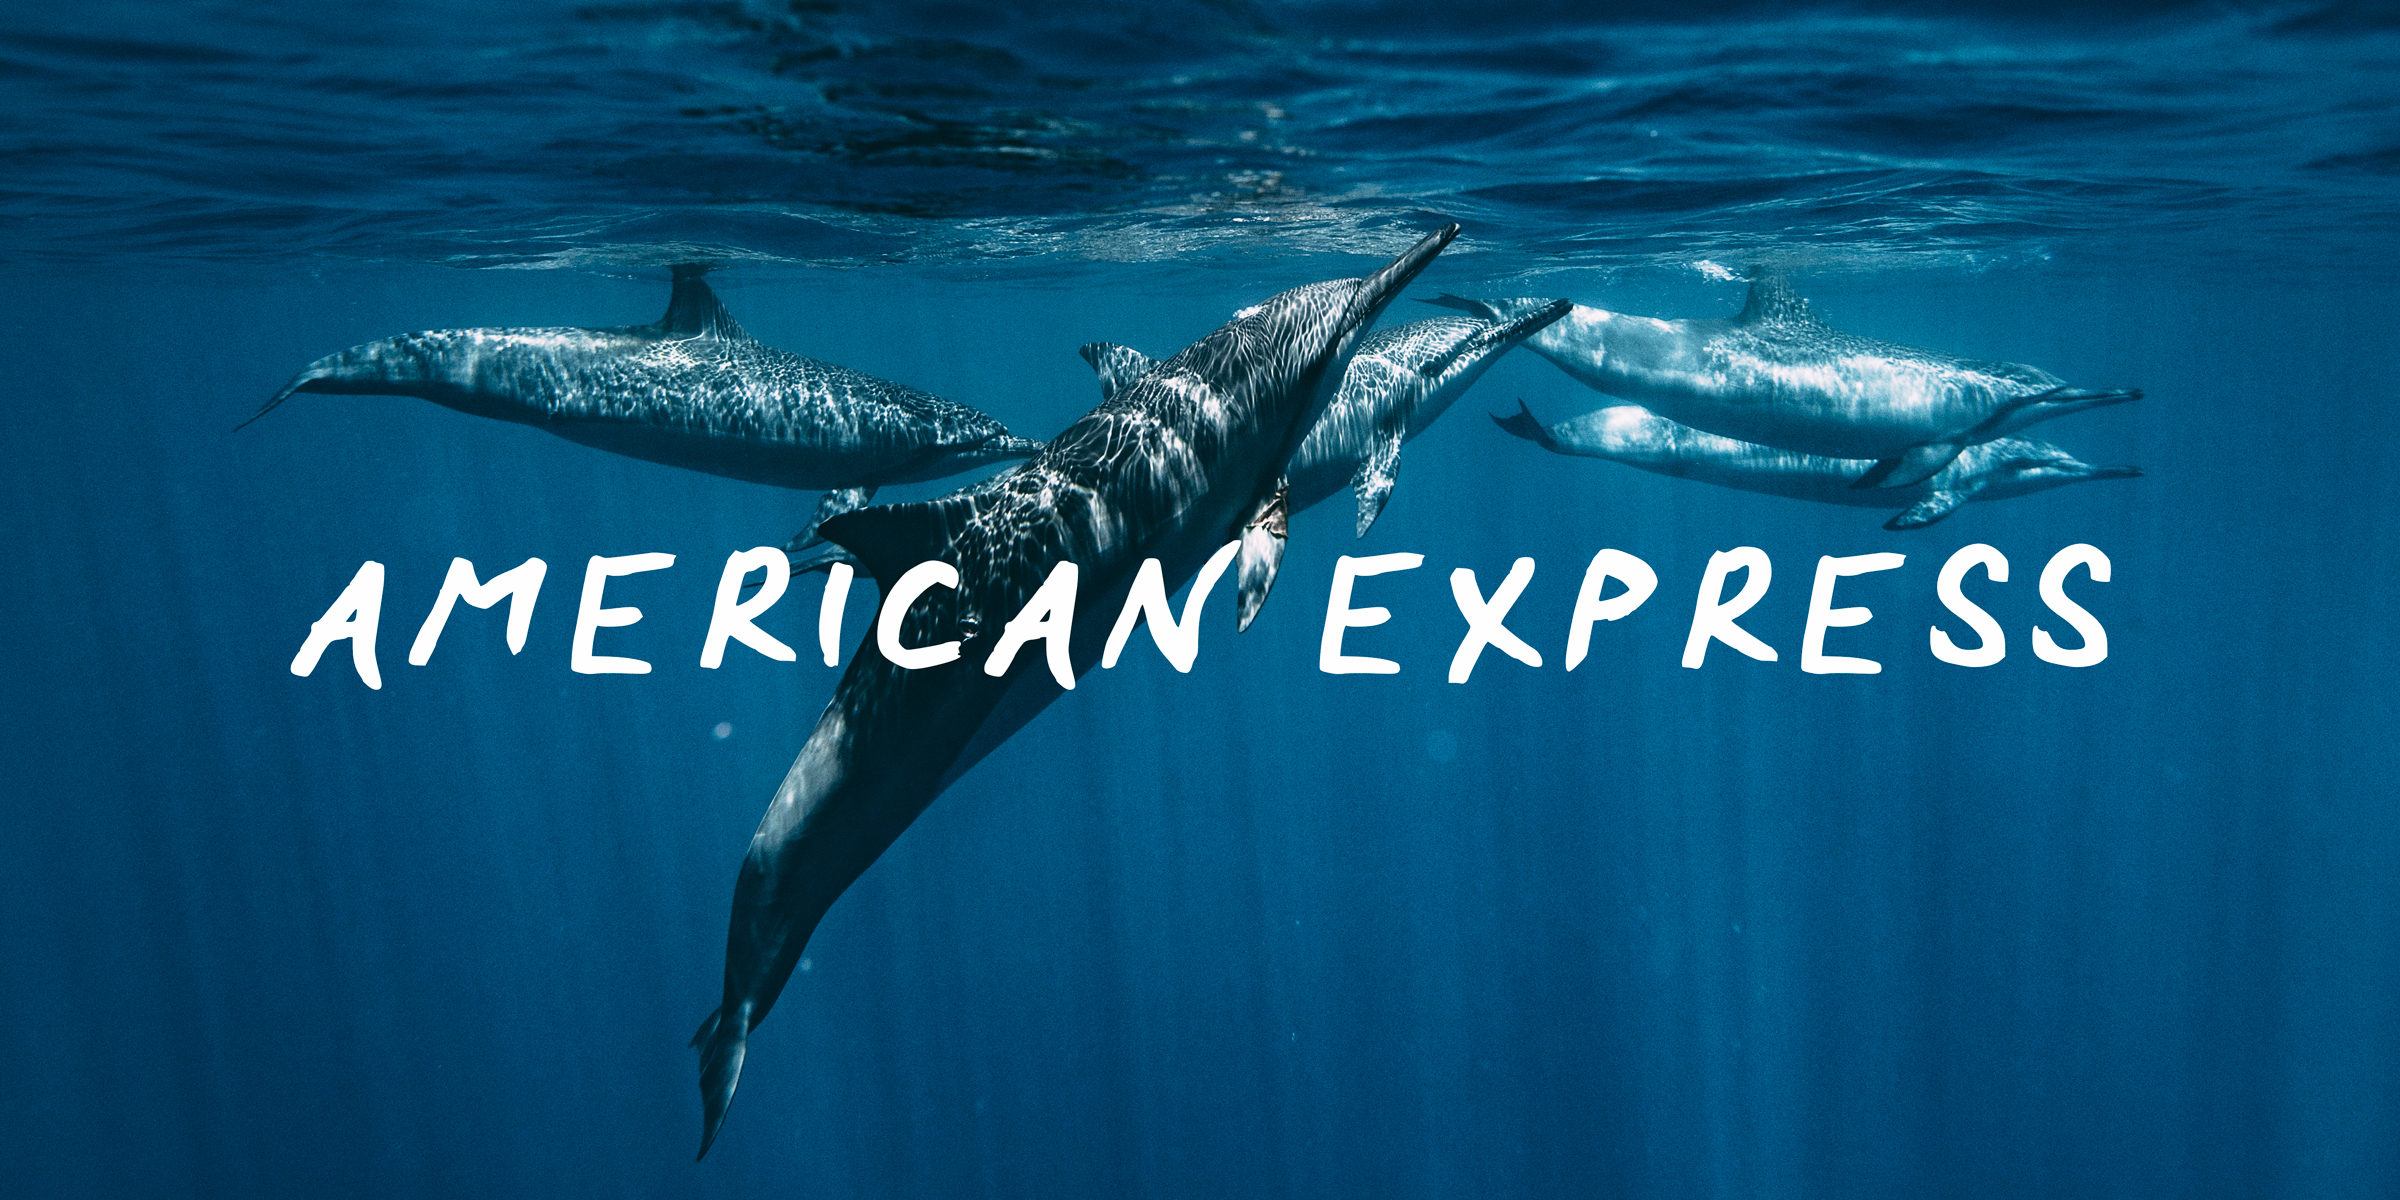 AMEX-Dolphins-Lola-Photography-2.jpg